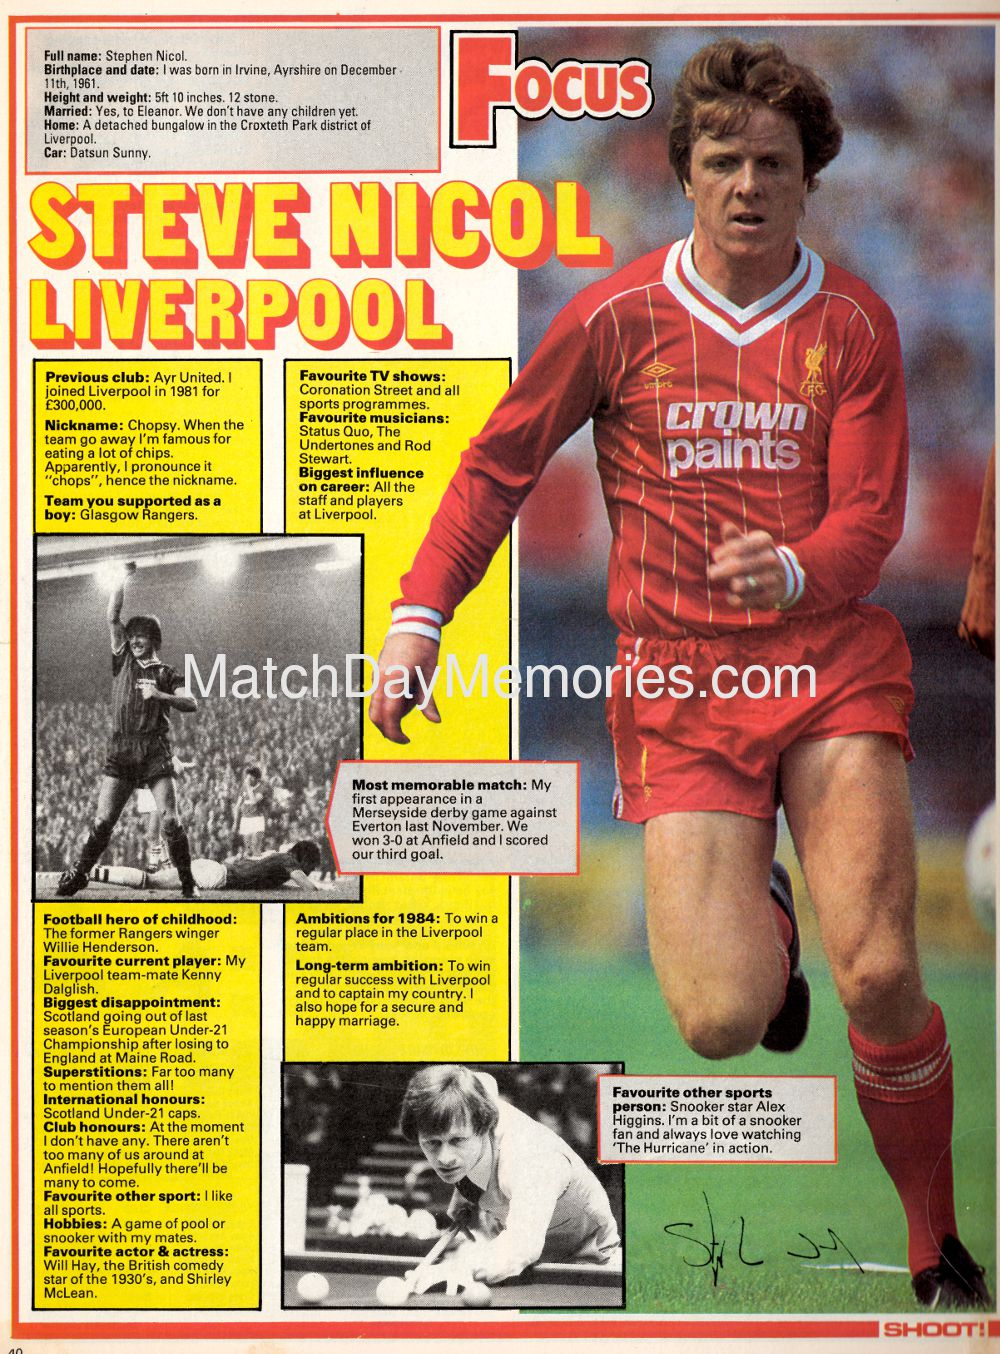 Focus on Steve Nicol